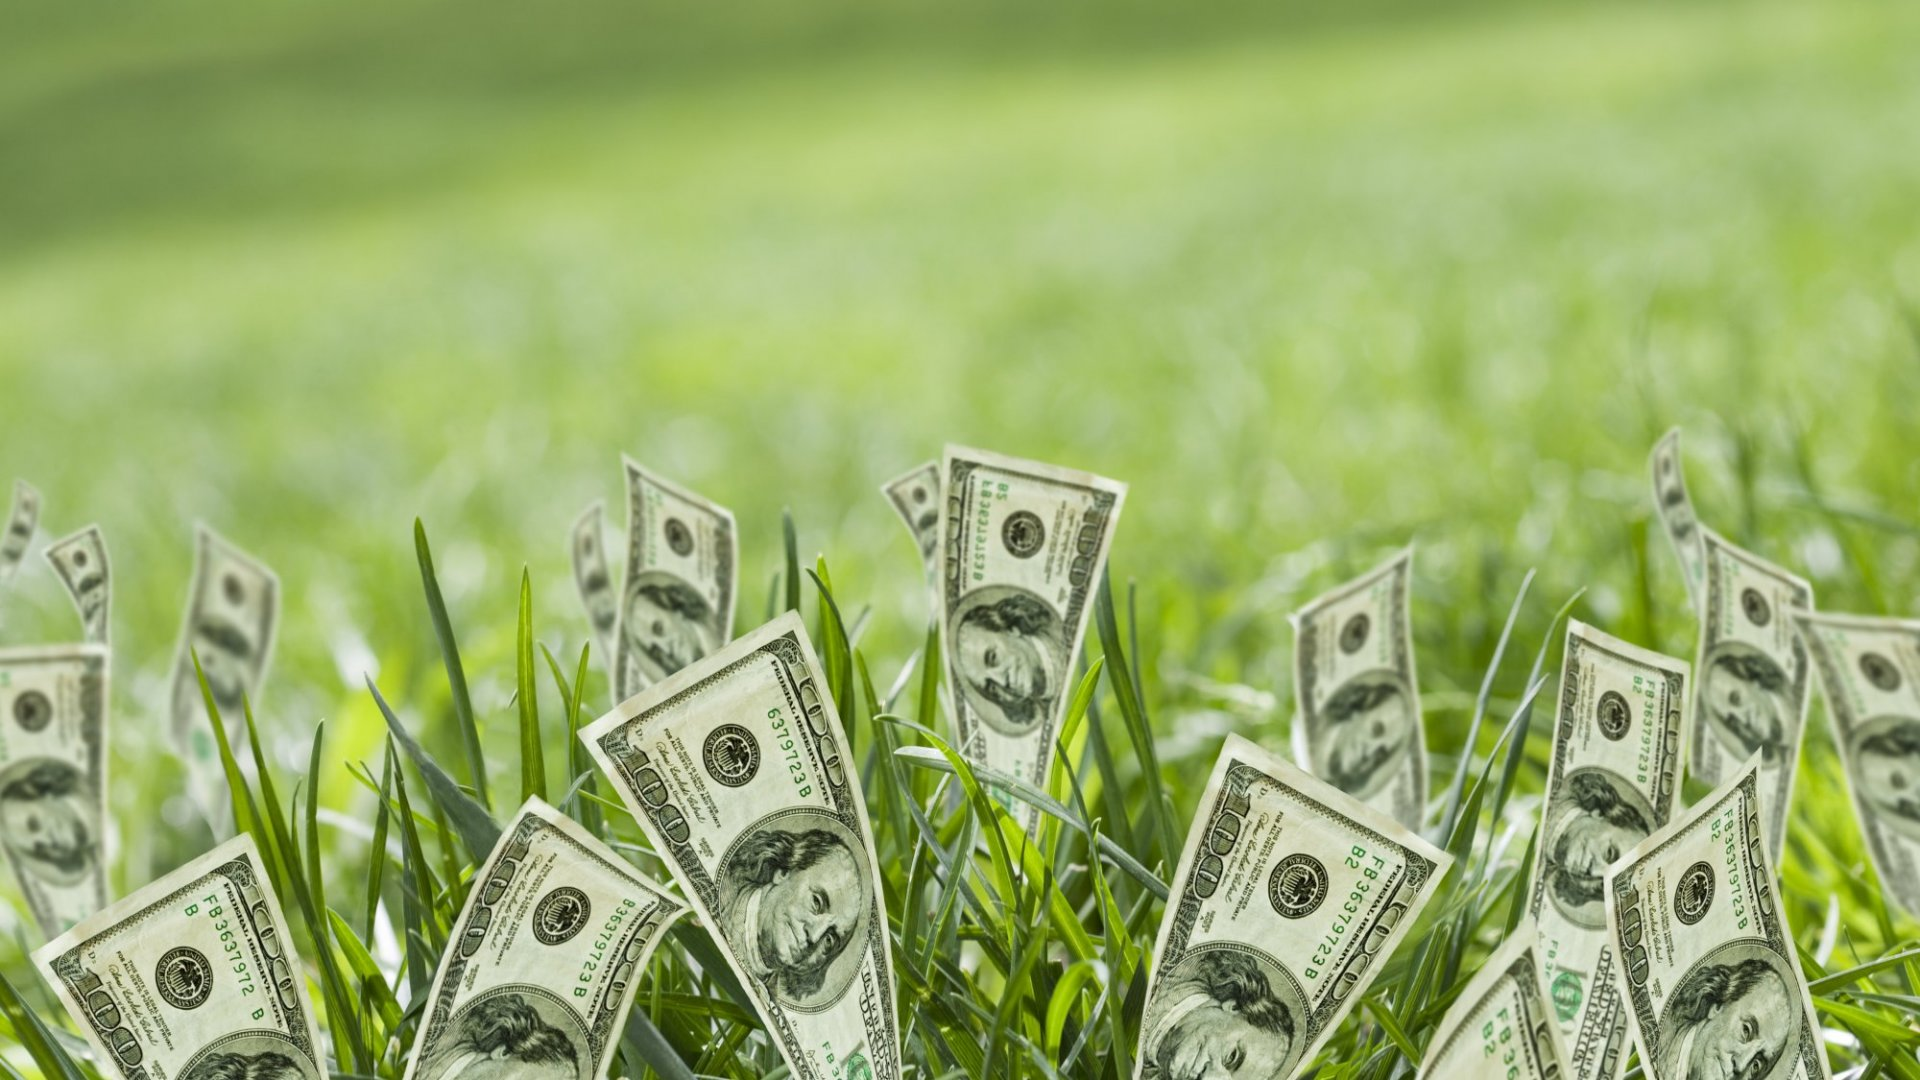 Looking for Funding? Do These 6 Things